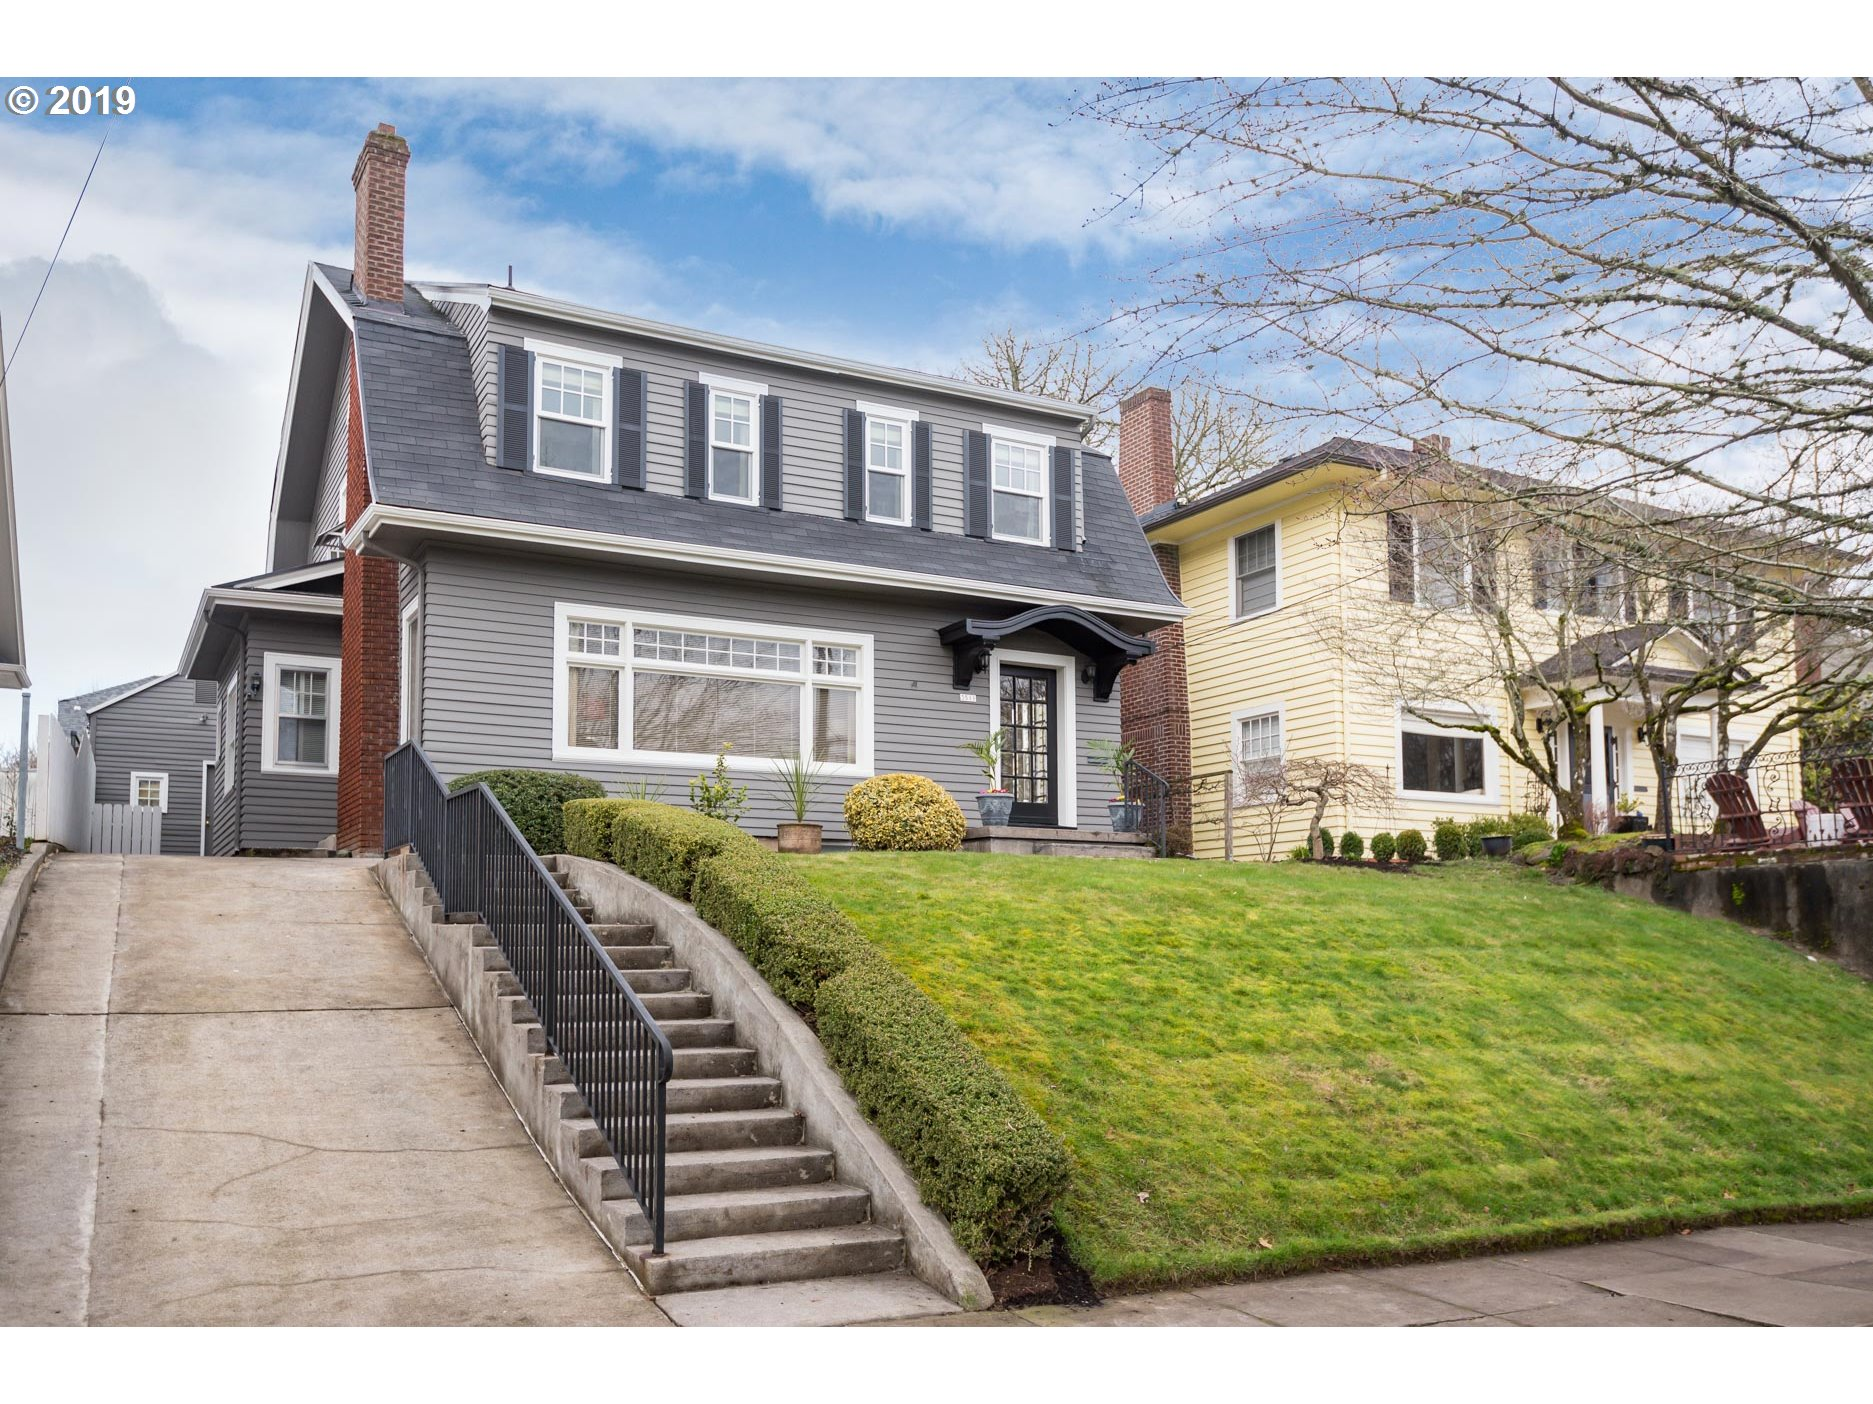 3511 NE COUCH ST, Portland OR 97232